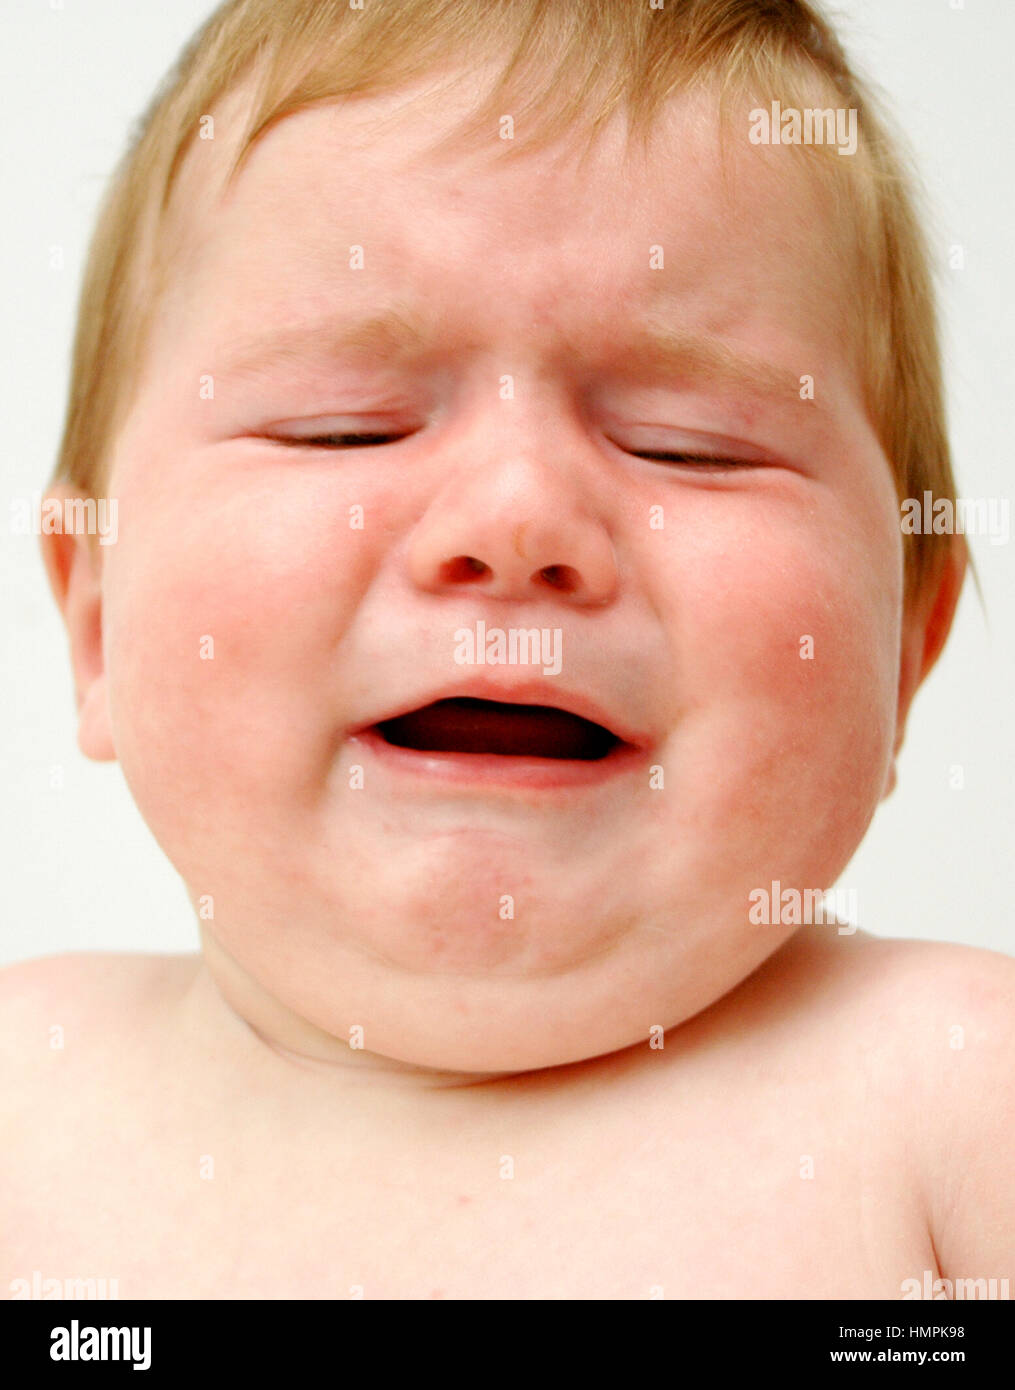 7 month old baby crying Stock Photo